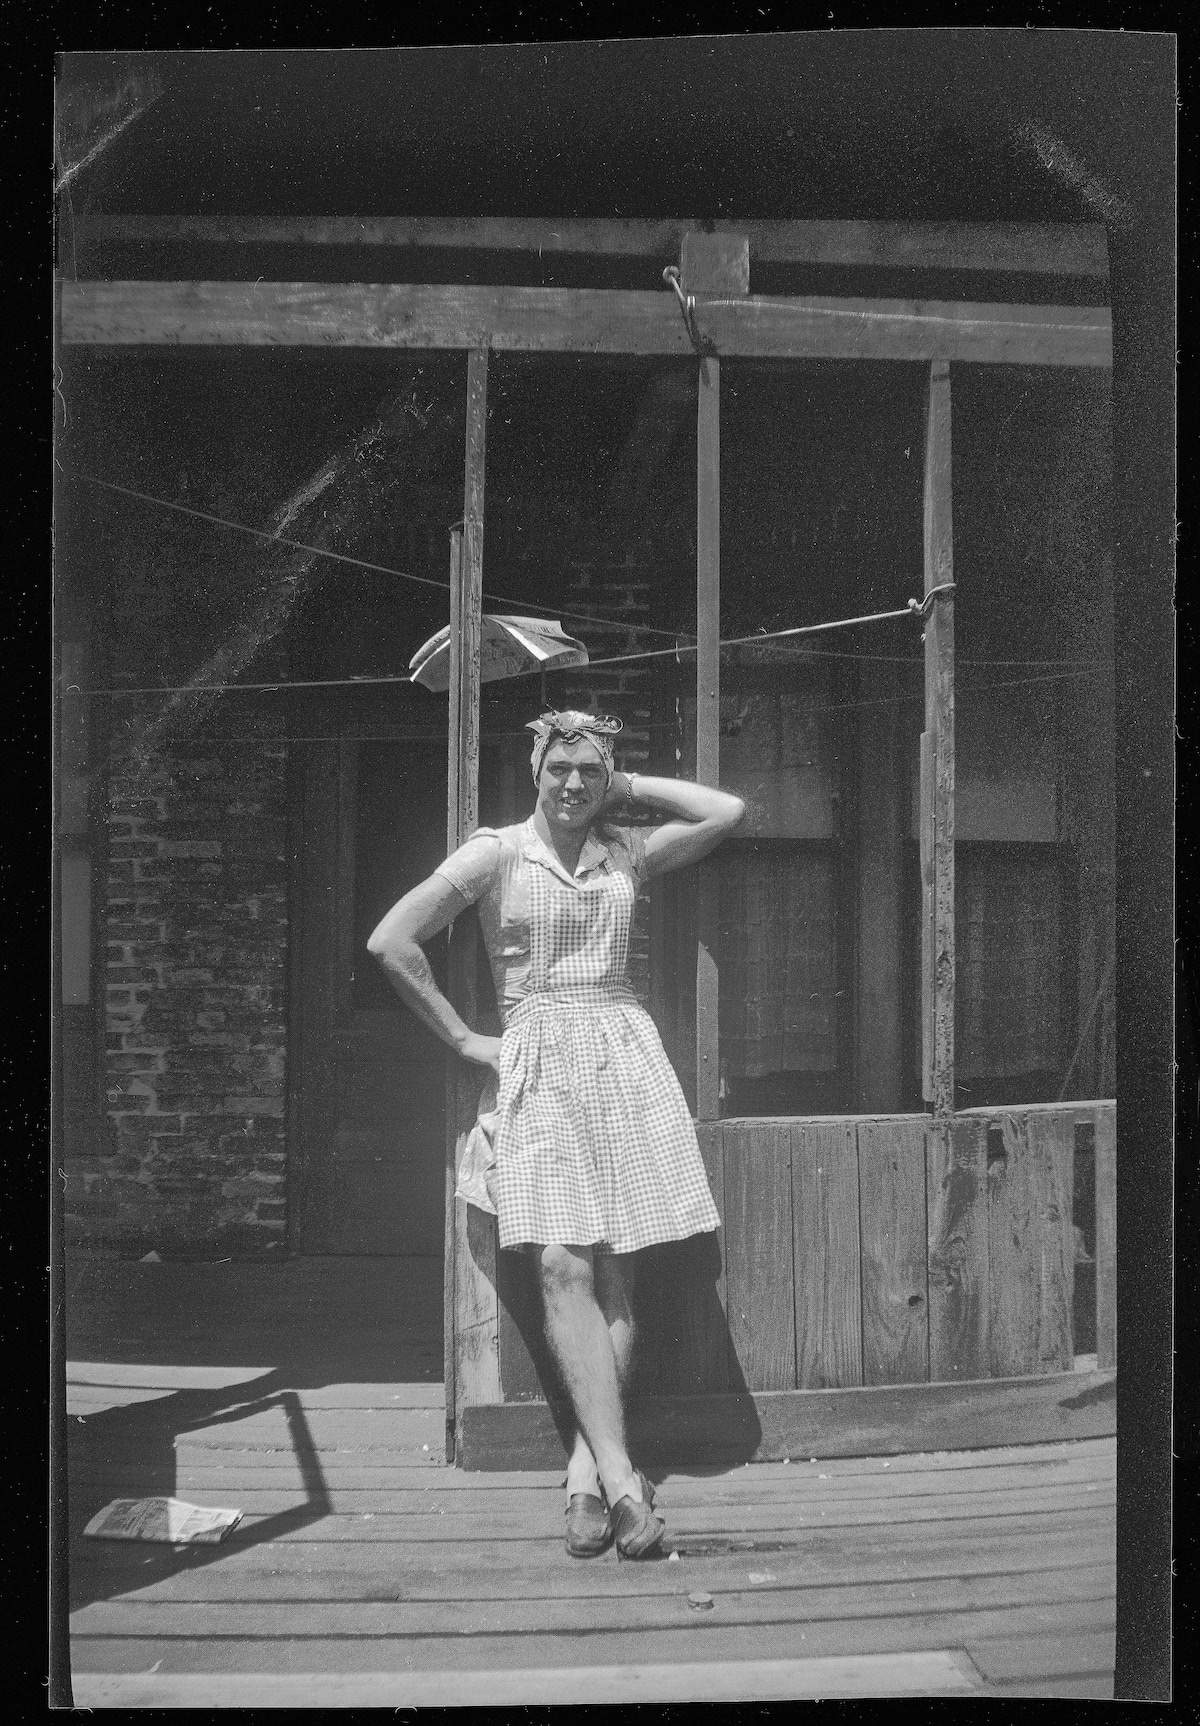 Vintage Photo of Man Dressed Up as a Woman